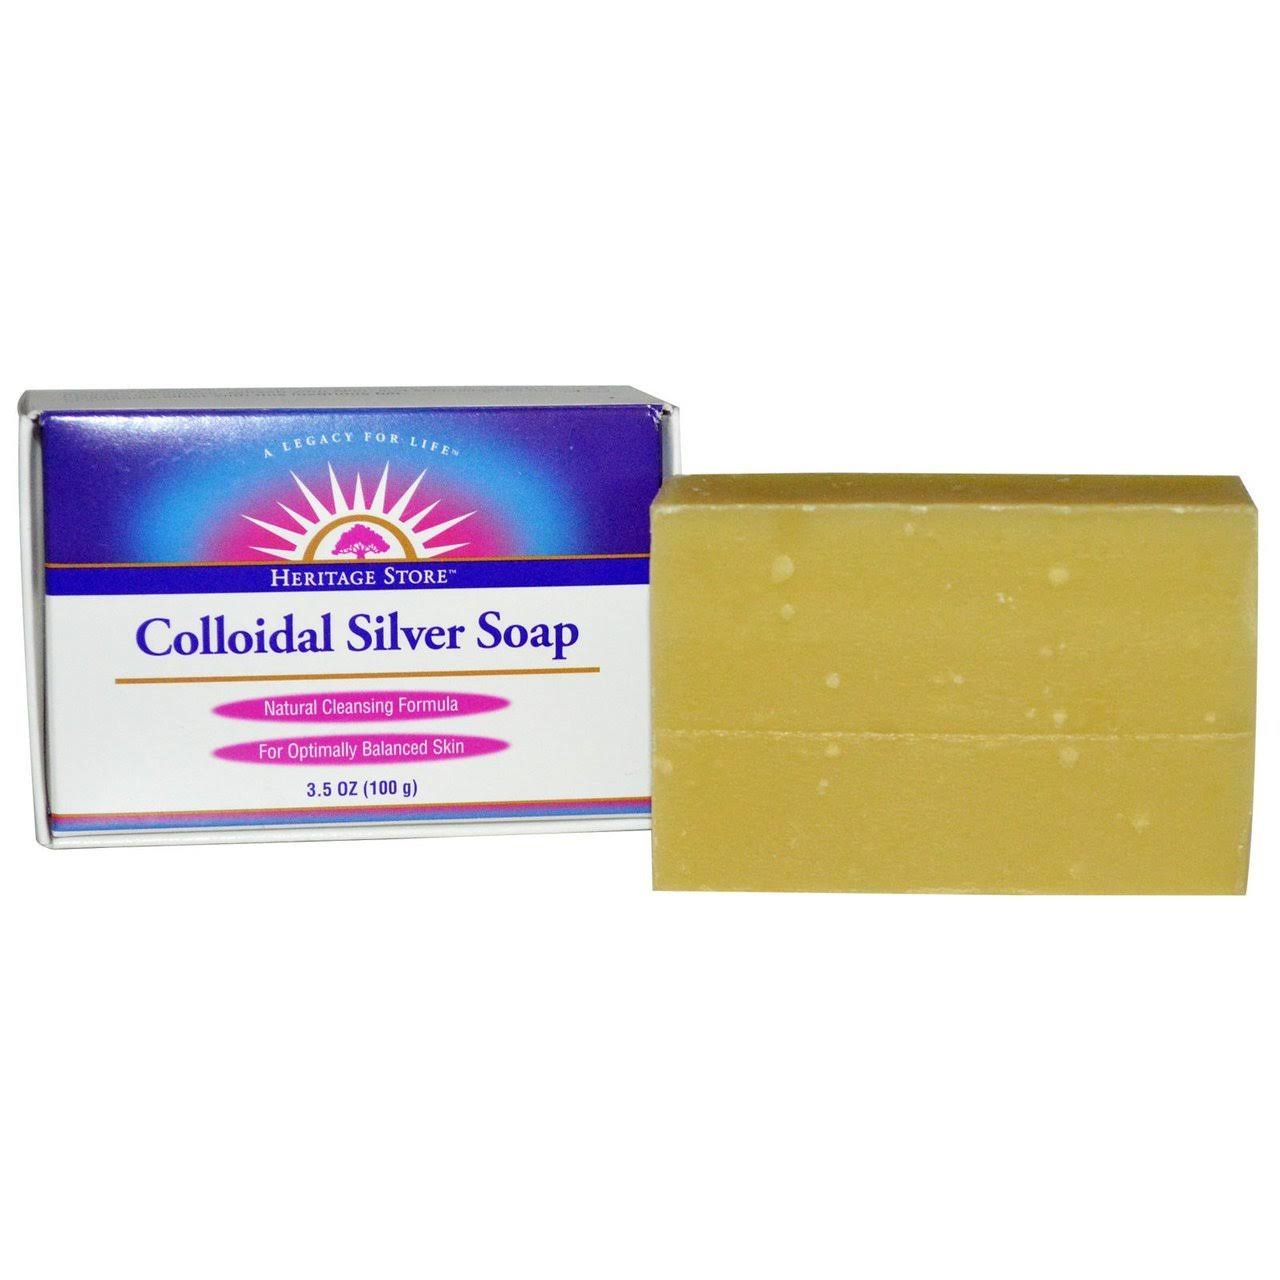 Heritage Store Bar Soap, Colloidal Silver - 3.5 oz